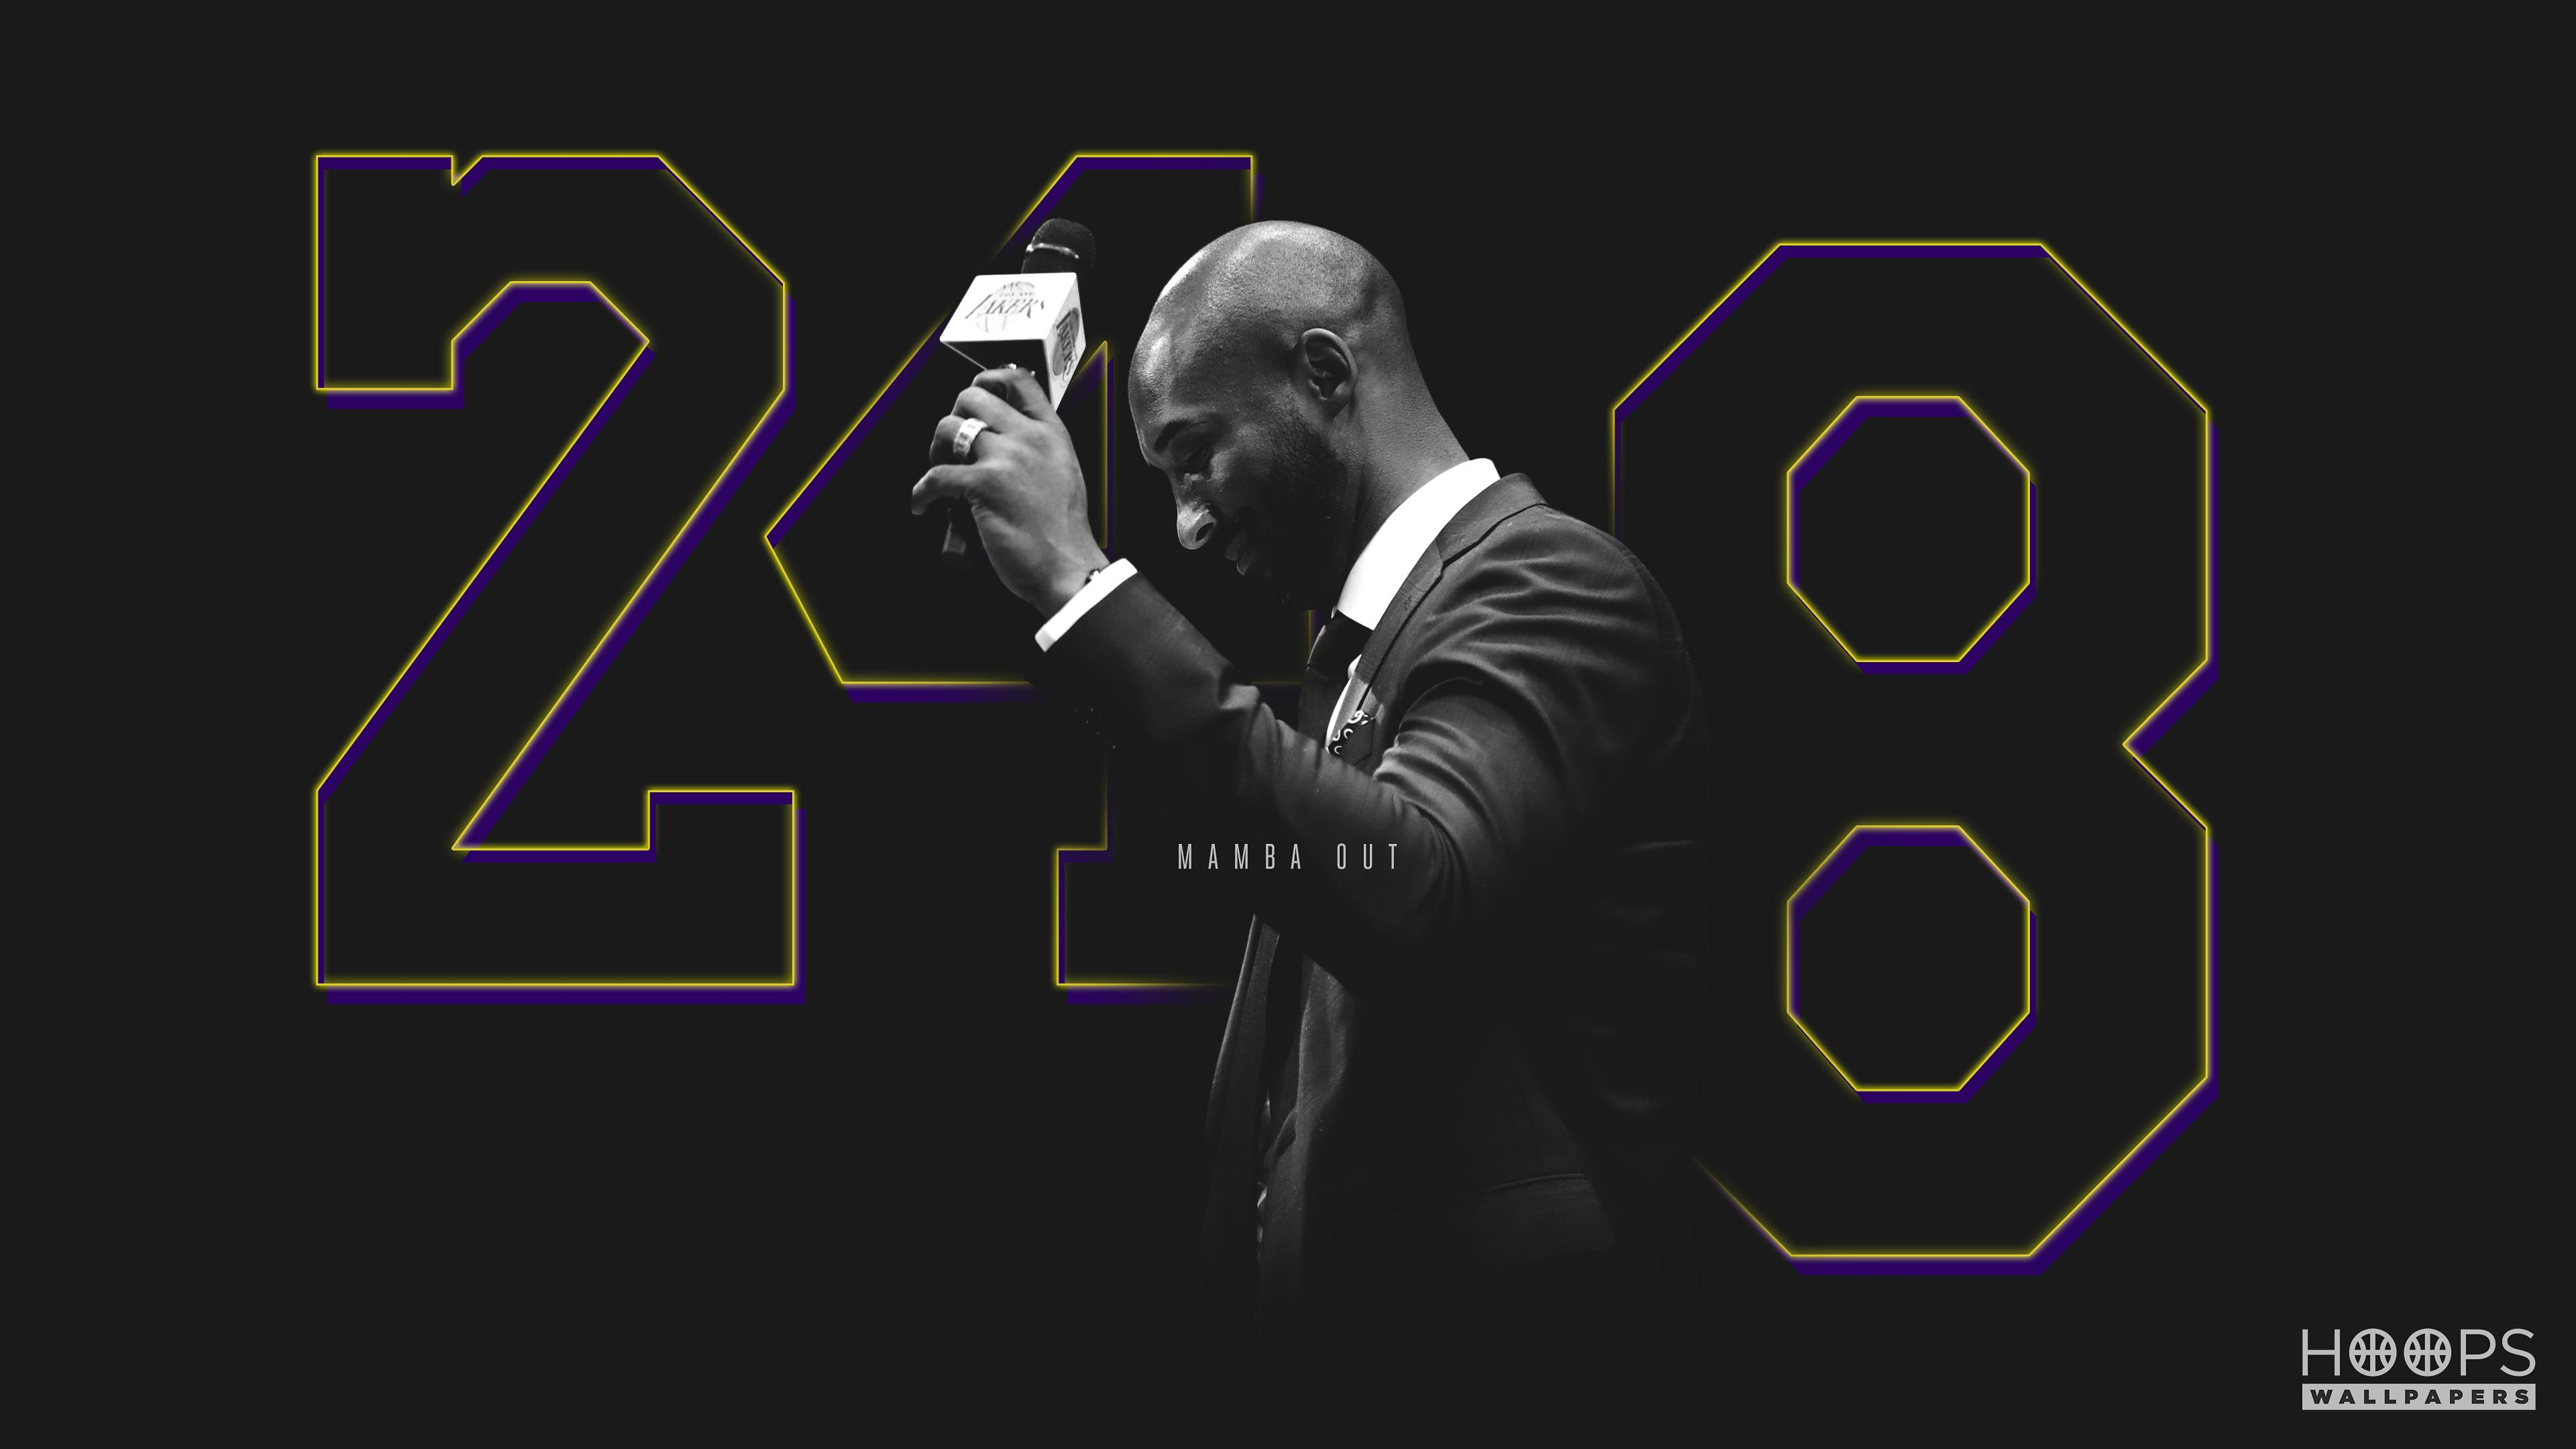 Nike Wallpaper Nba: Nike Kobe Logo Wallpapers HD